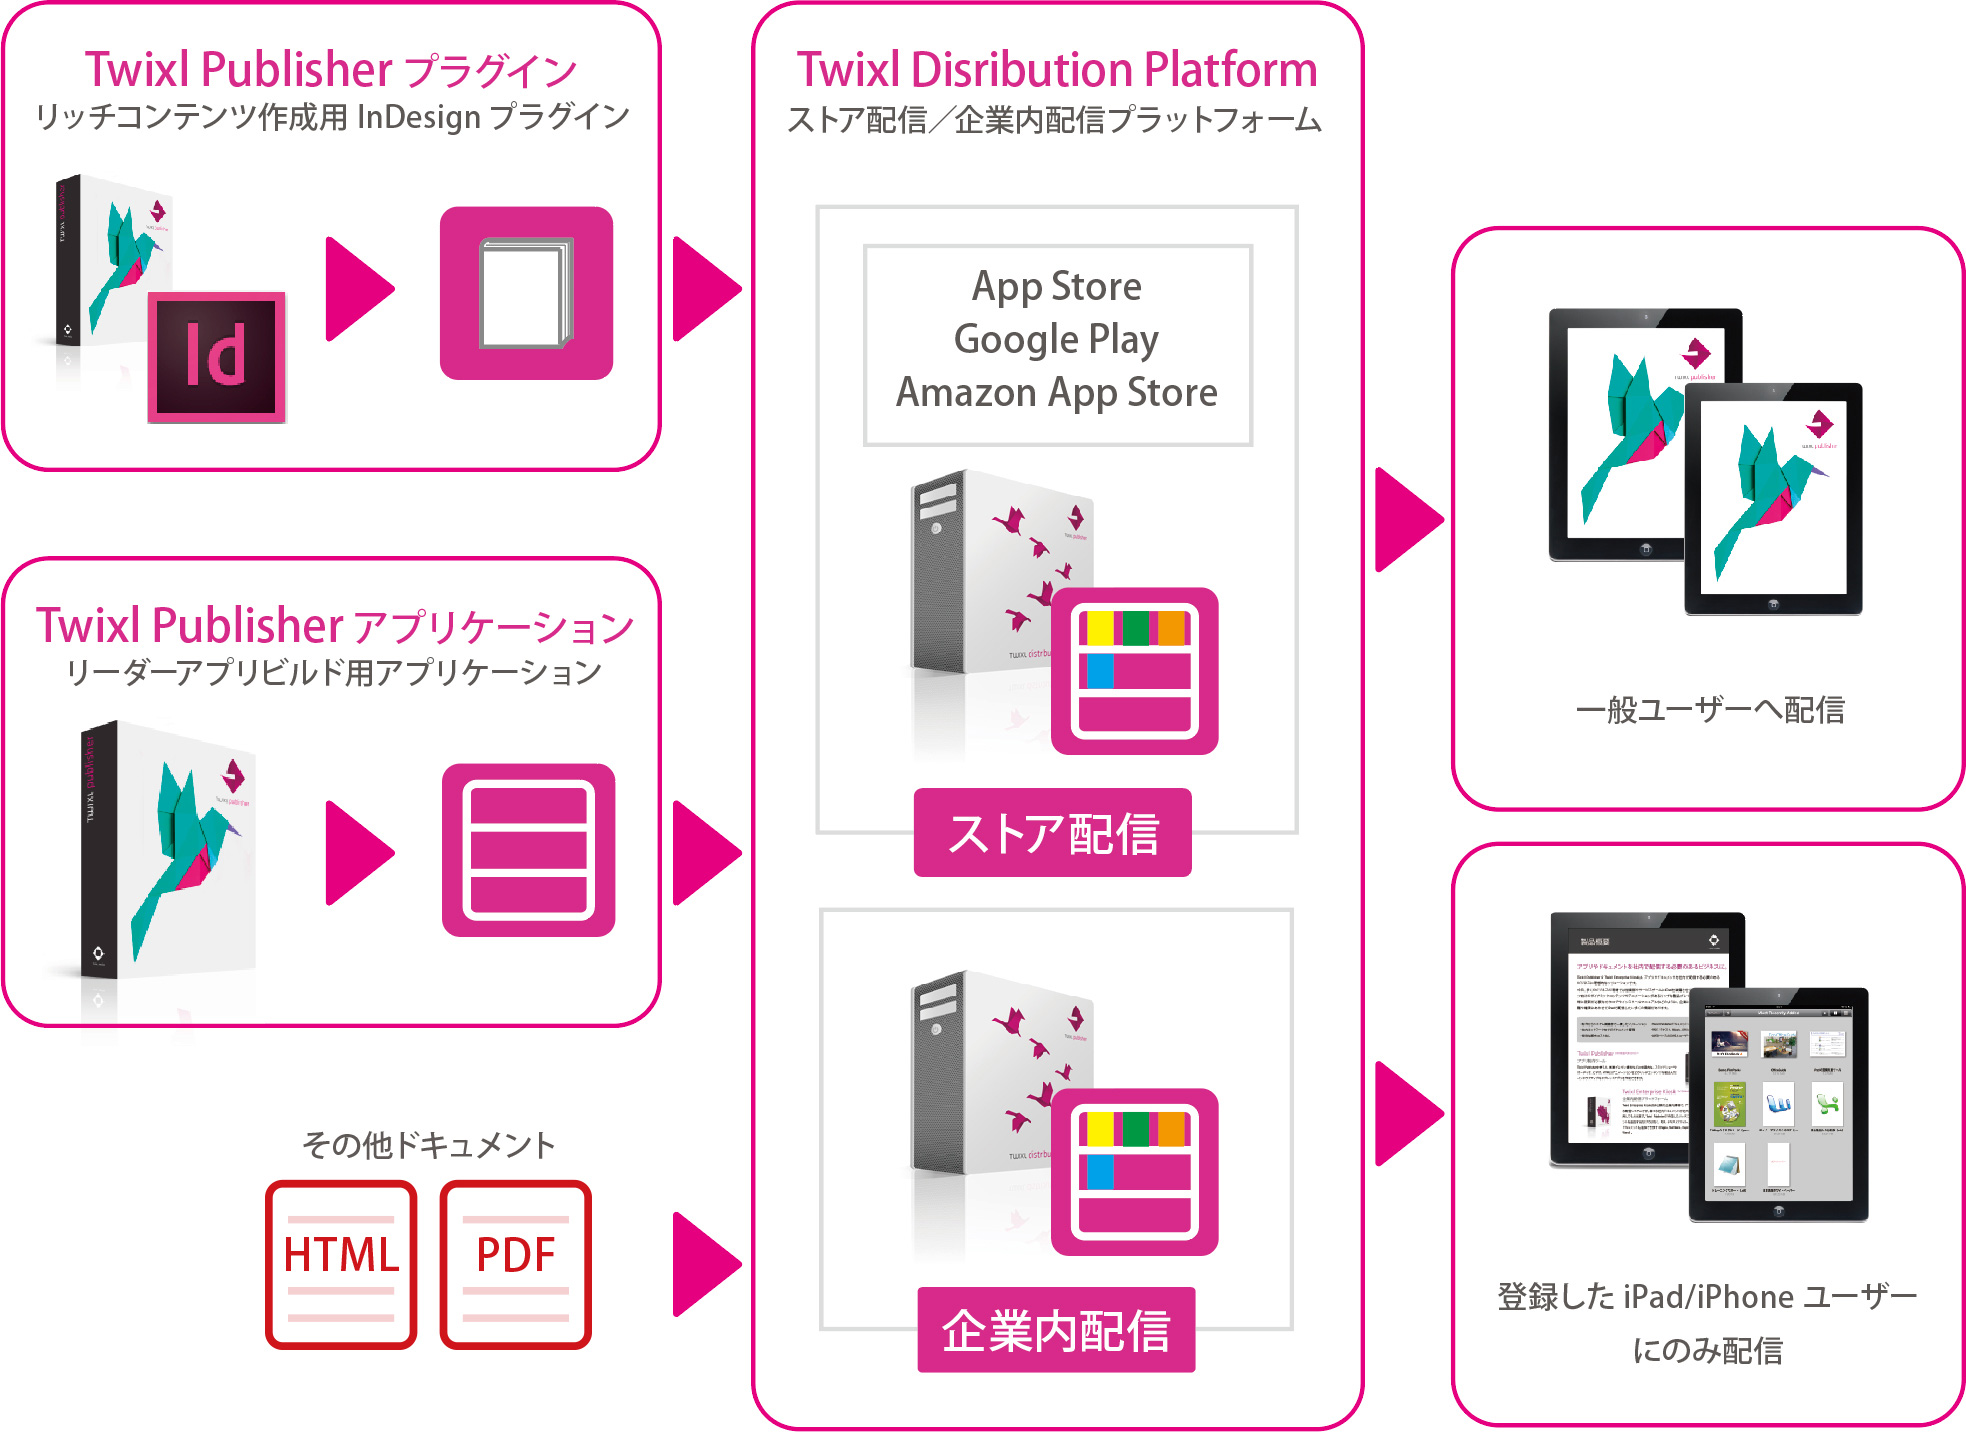 Twixl Publisherフロー